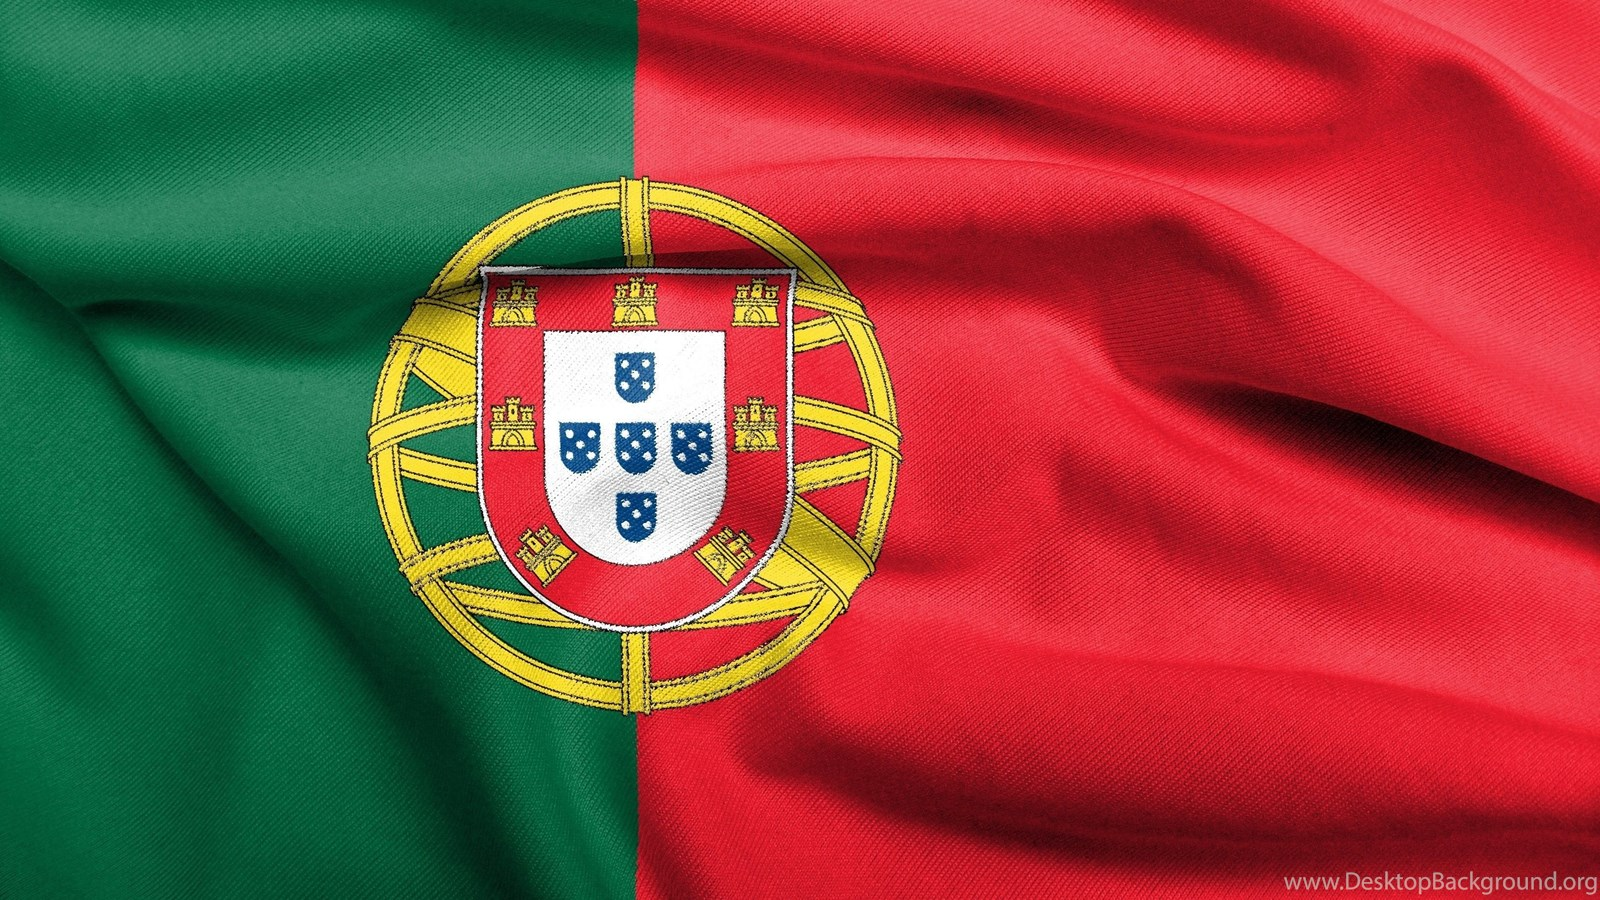 3d Wallpaper For Iphone 3gs Portugal Flag 3d Texture Desktop Background